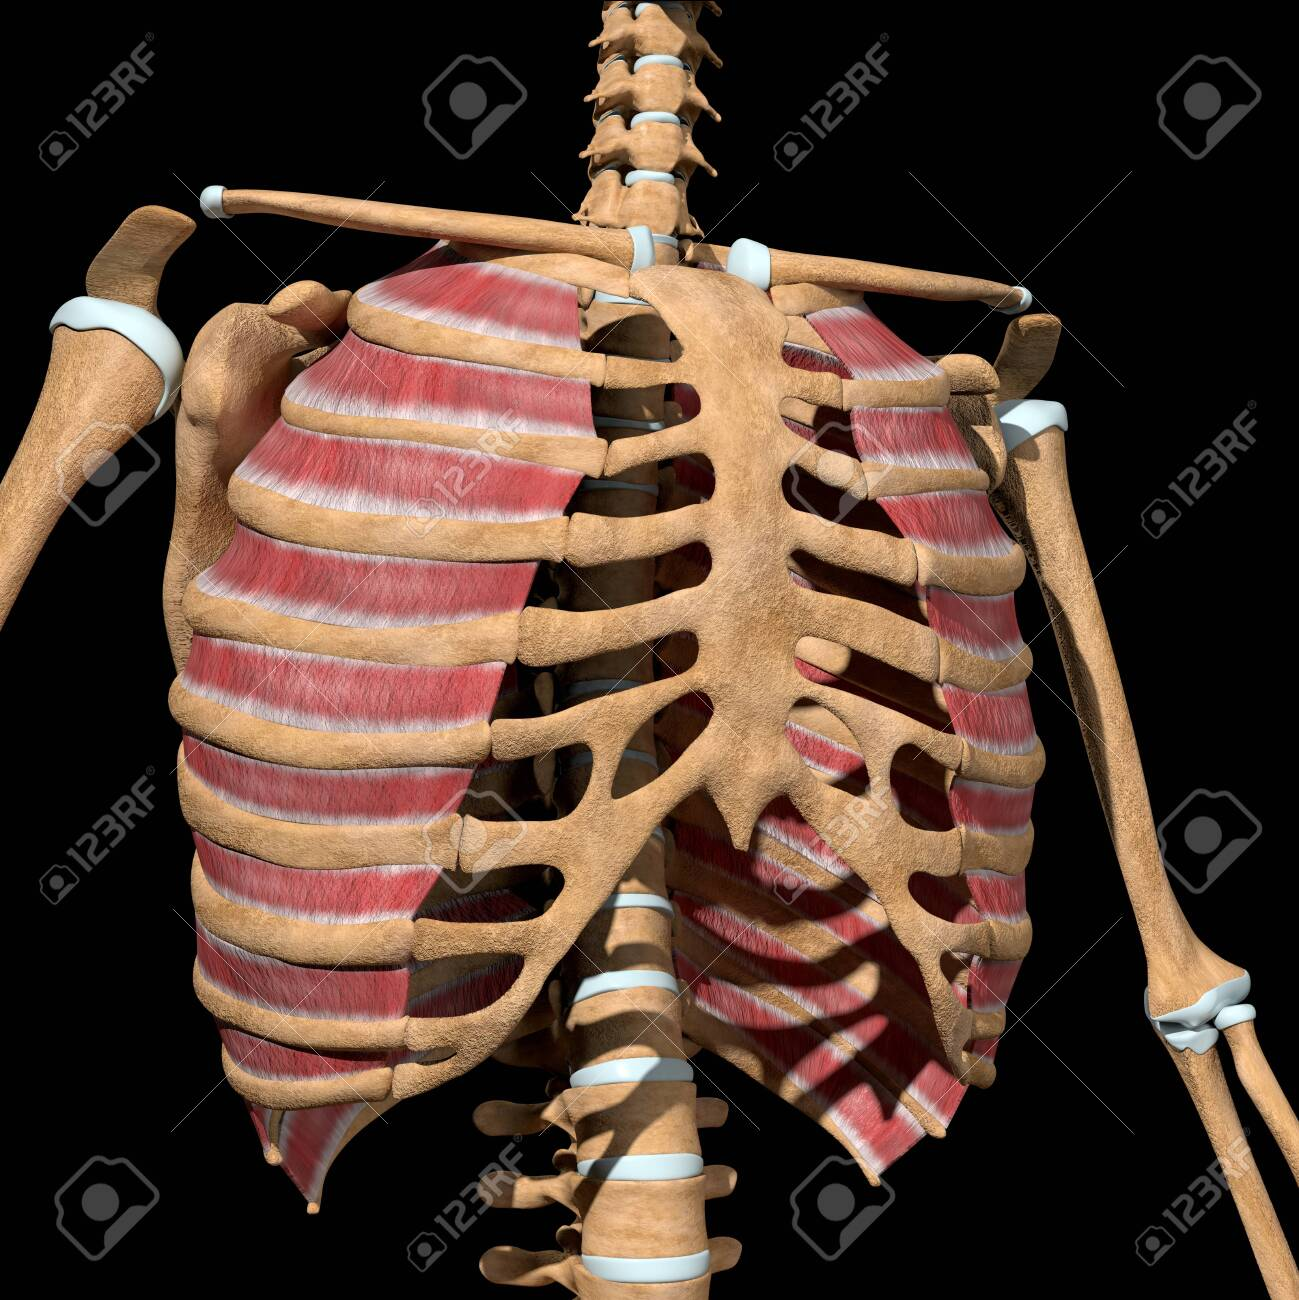 This 3d illustration shows the external intercostal muscles on skeleton - 141625535